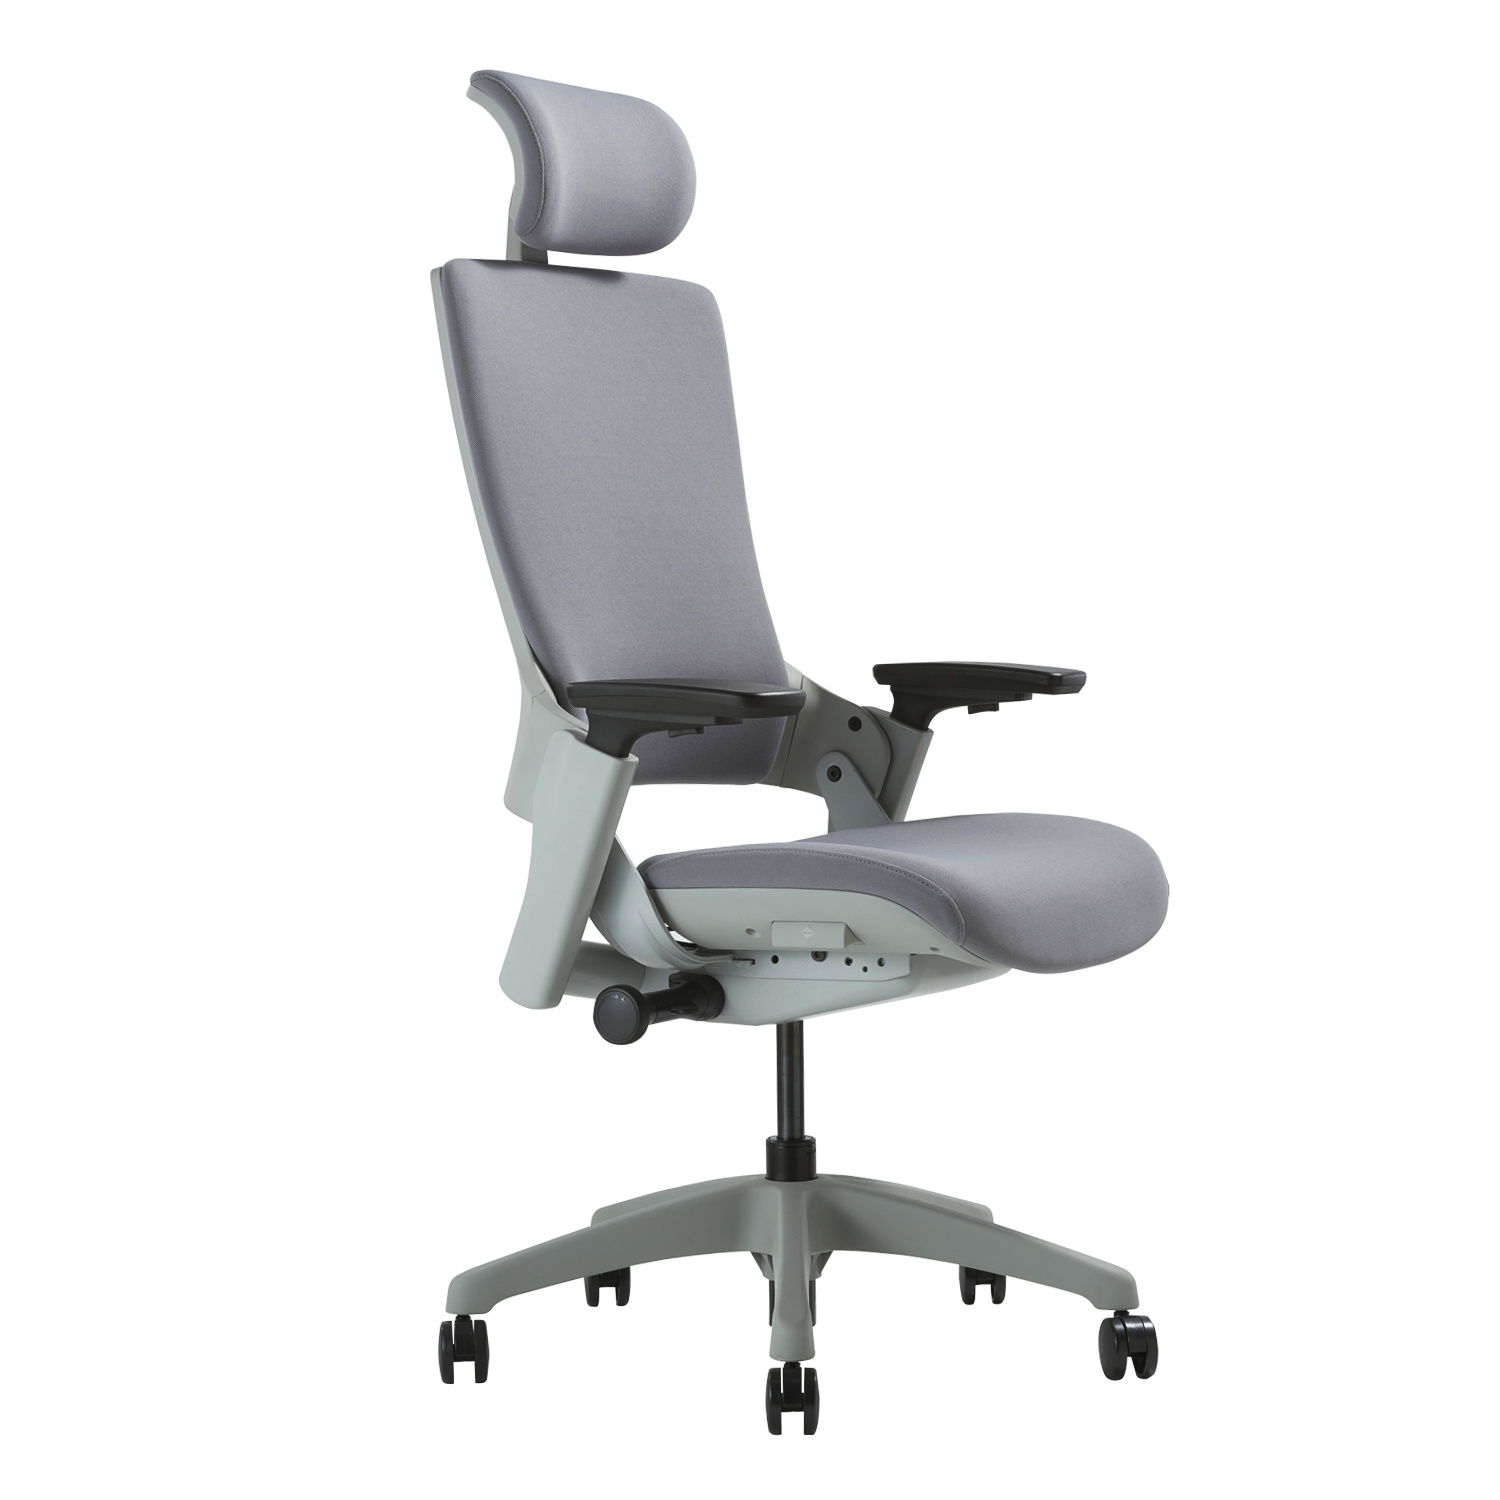 Image of: Black Rolling Desk Chair For Office Breathable High Back Executive Chair With Comfort Airflow Office Furniture Accessories Chairs Sofas